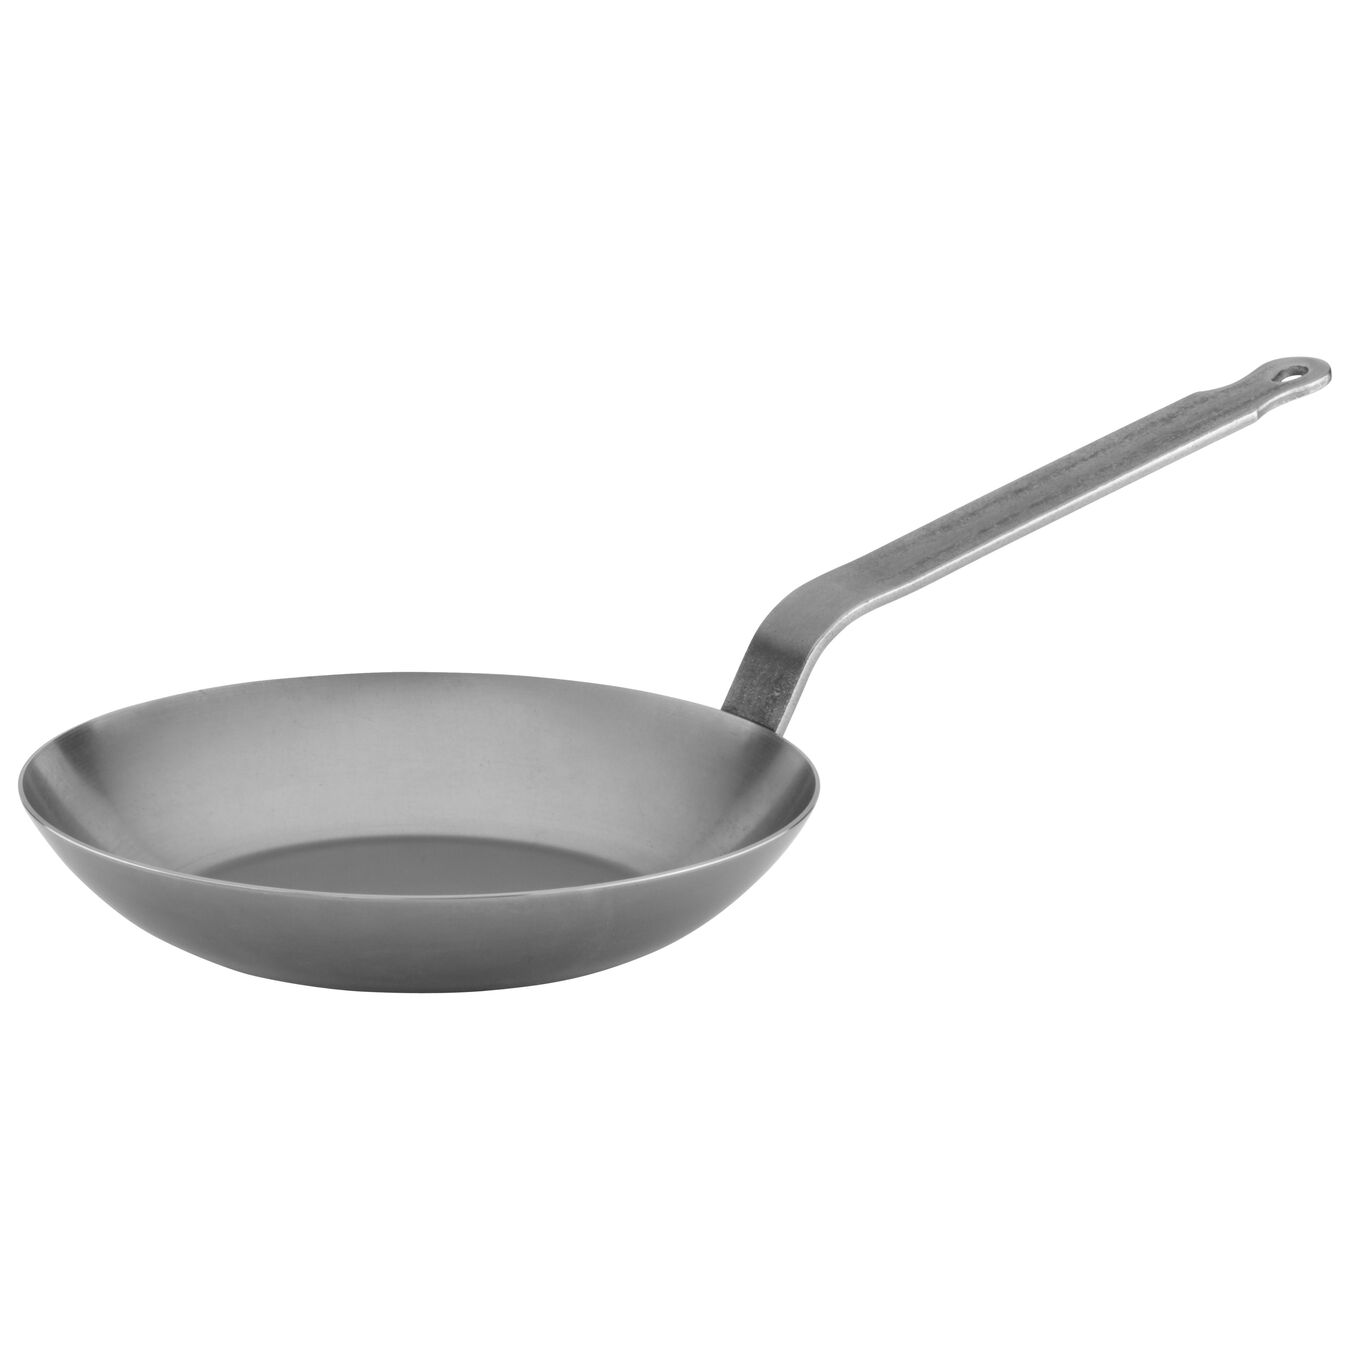 24 cm / 9.5 inch Carbon steel Frying pan,,large 1